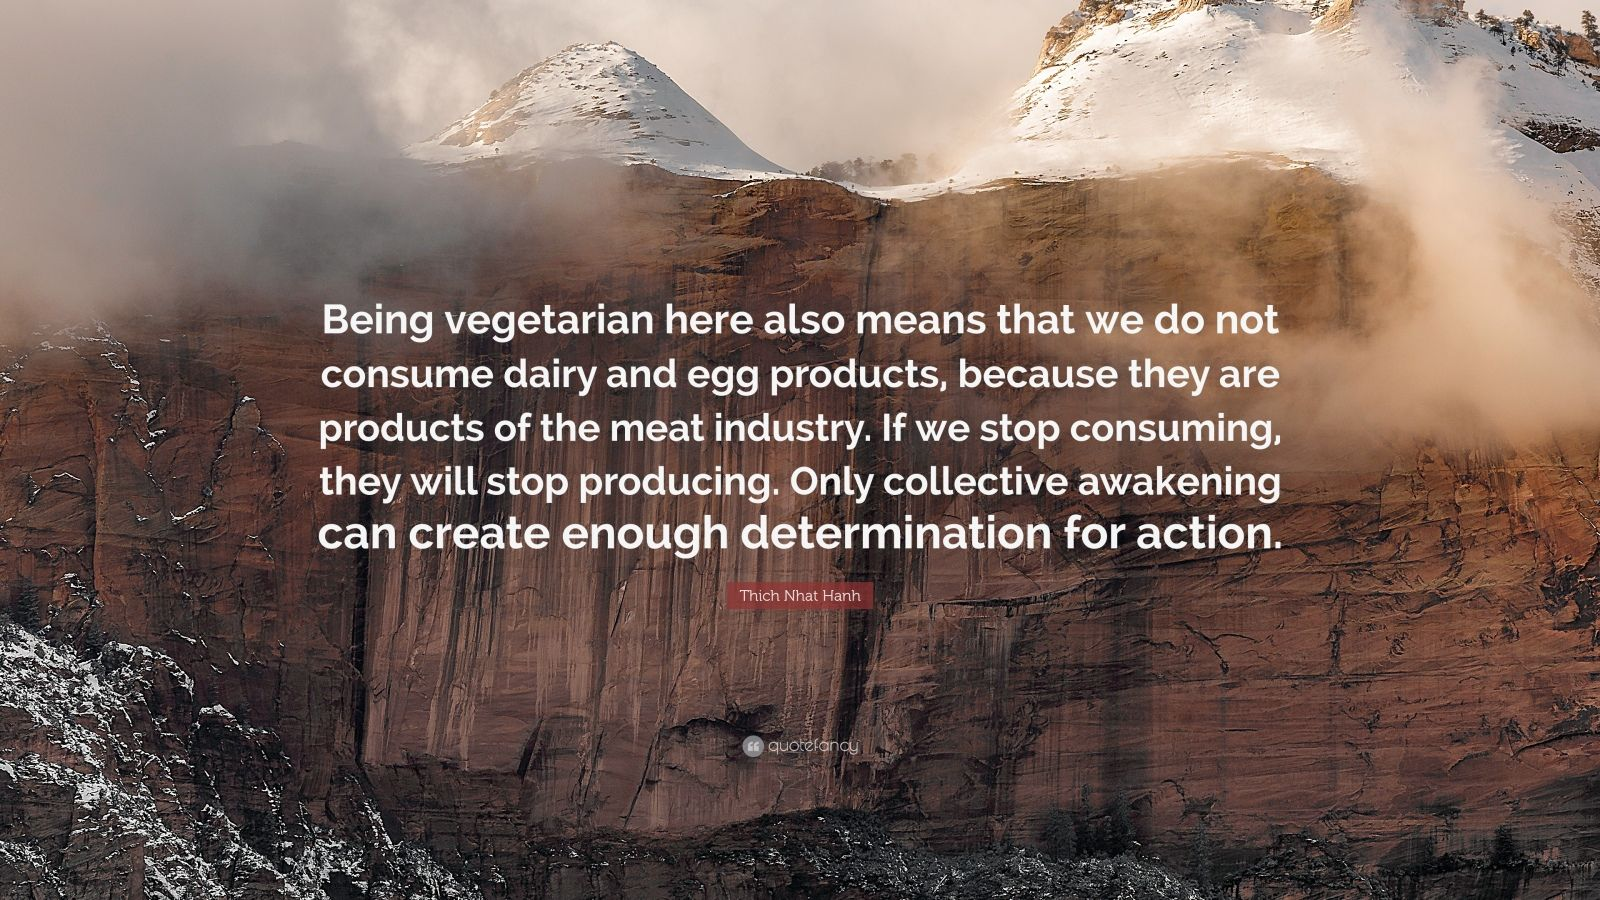 "Thich Nhat Hanh Quote: ""Being vegetarian here also means that we do not consume dairy and egg products, because they are products of the meat industry. If we stop consuming, they will stop producing. Only collective awakening can create enough determination for action."""